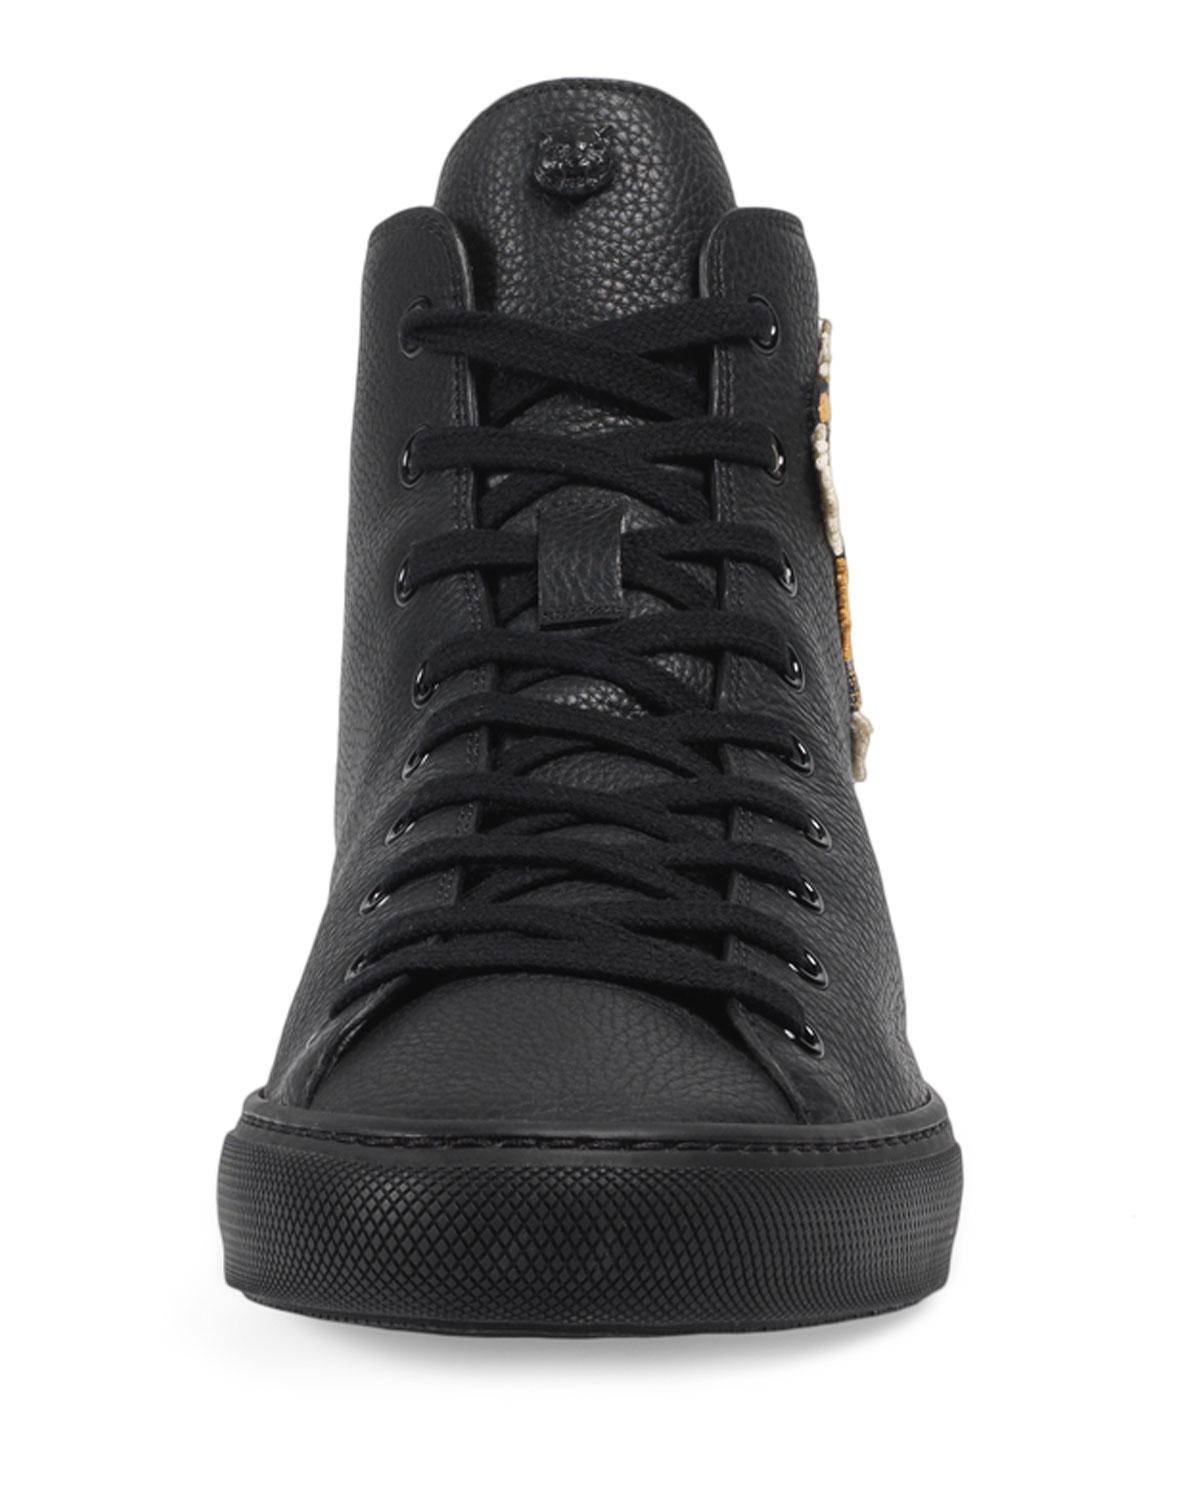 best cheap affordable price the cheapest Men's Major High-top Sneakers W/tiger Patch